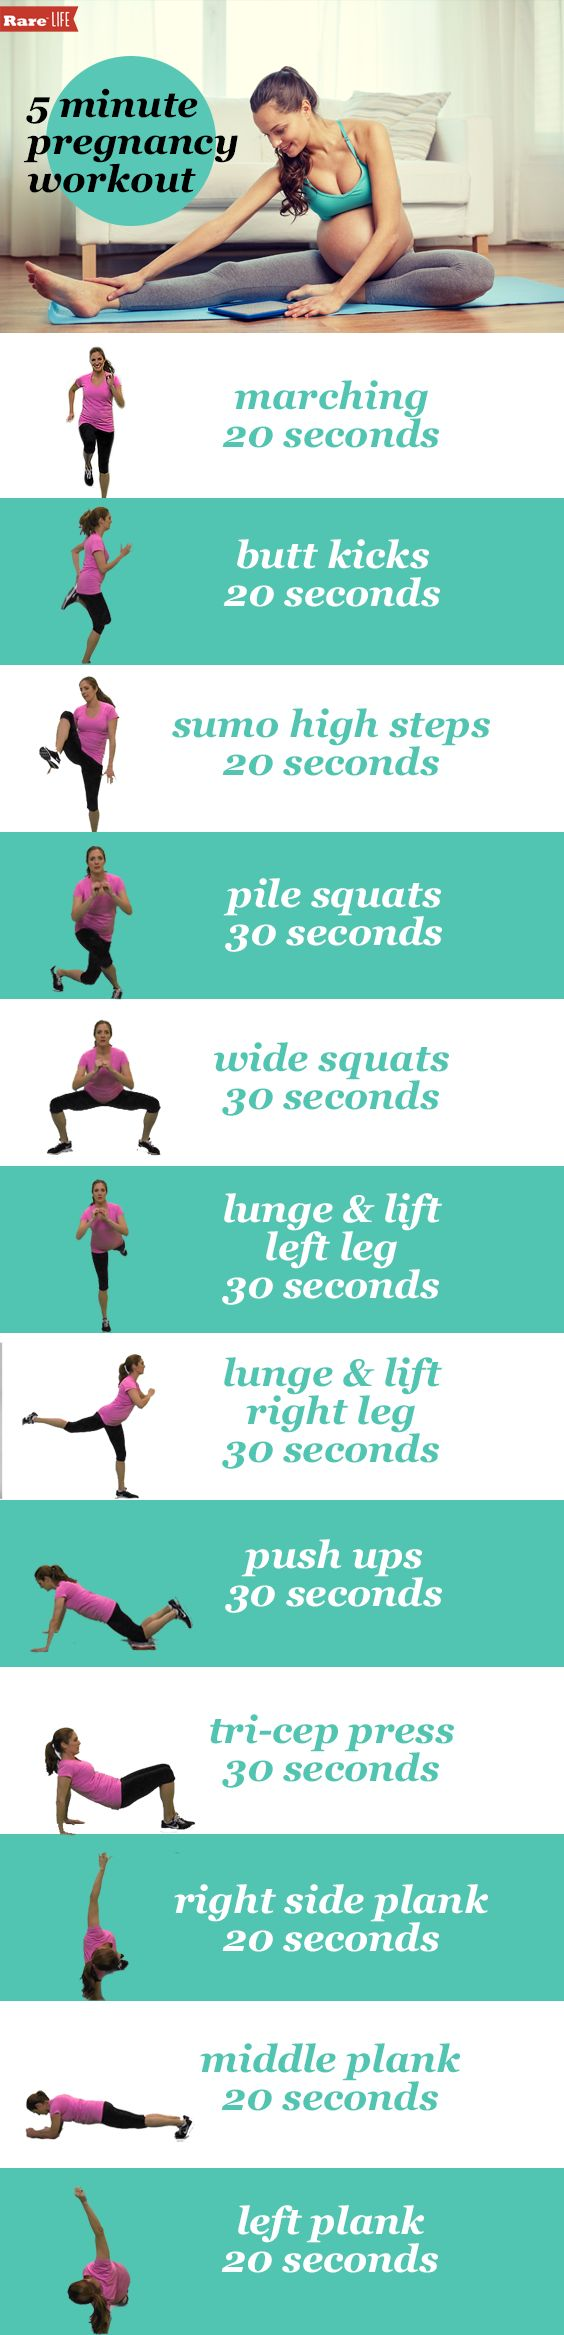 Hot Topics host @hcat loves finding new ways to stay fit in her free time...especially in her 2nd trimester! Here is Heather's ultimate fitness guide: The five-minute strength workout! #Pregnant #Pregnancy #Fitness #Workout #Mommy